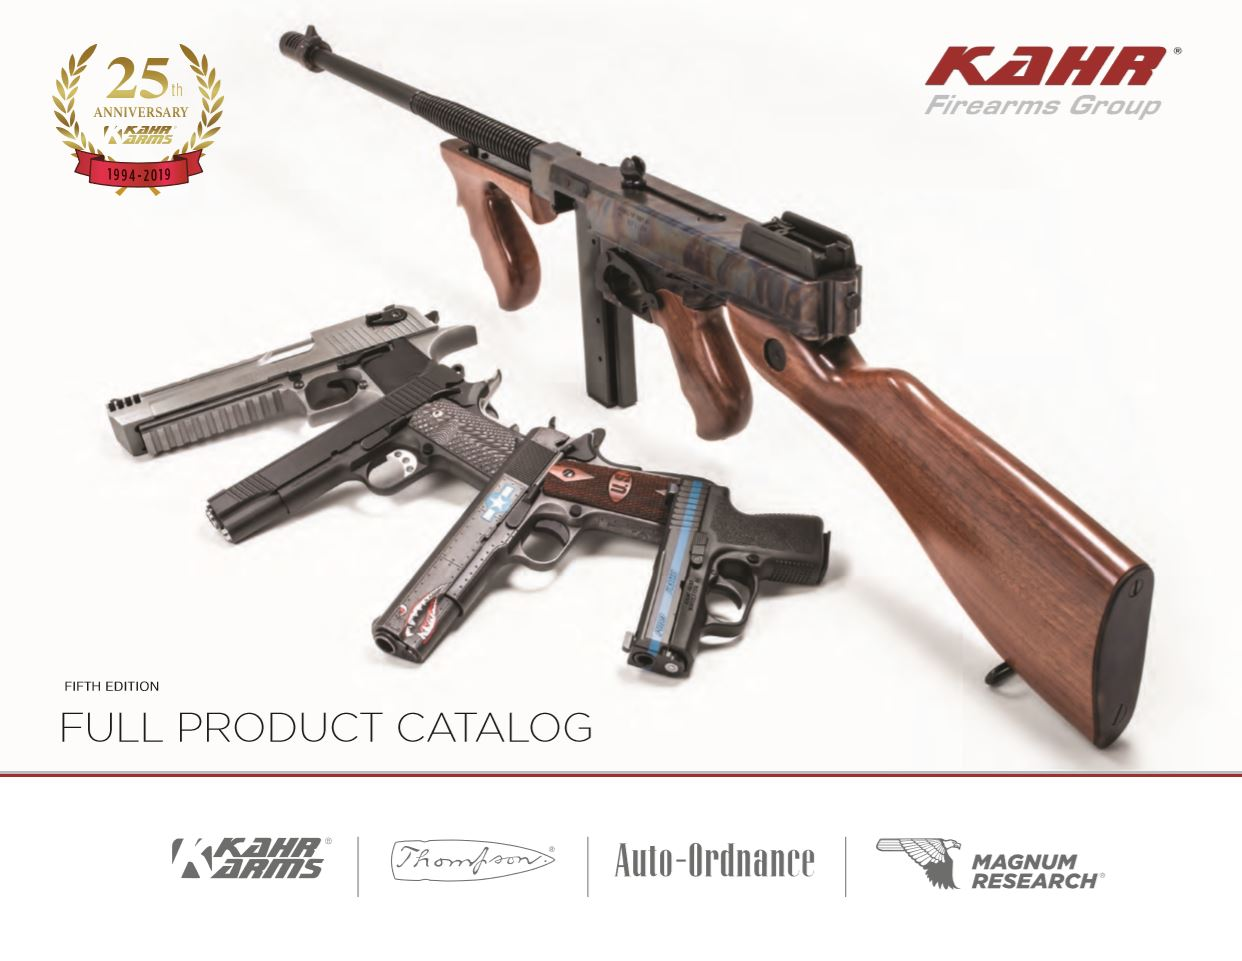 Kahr GC brochures manuals kahr arms a leader in technology and innovation